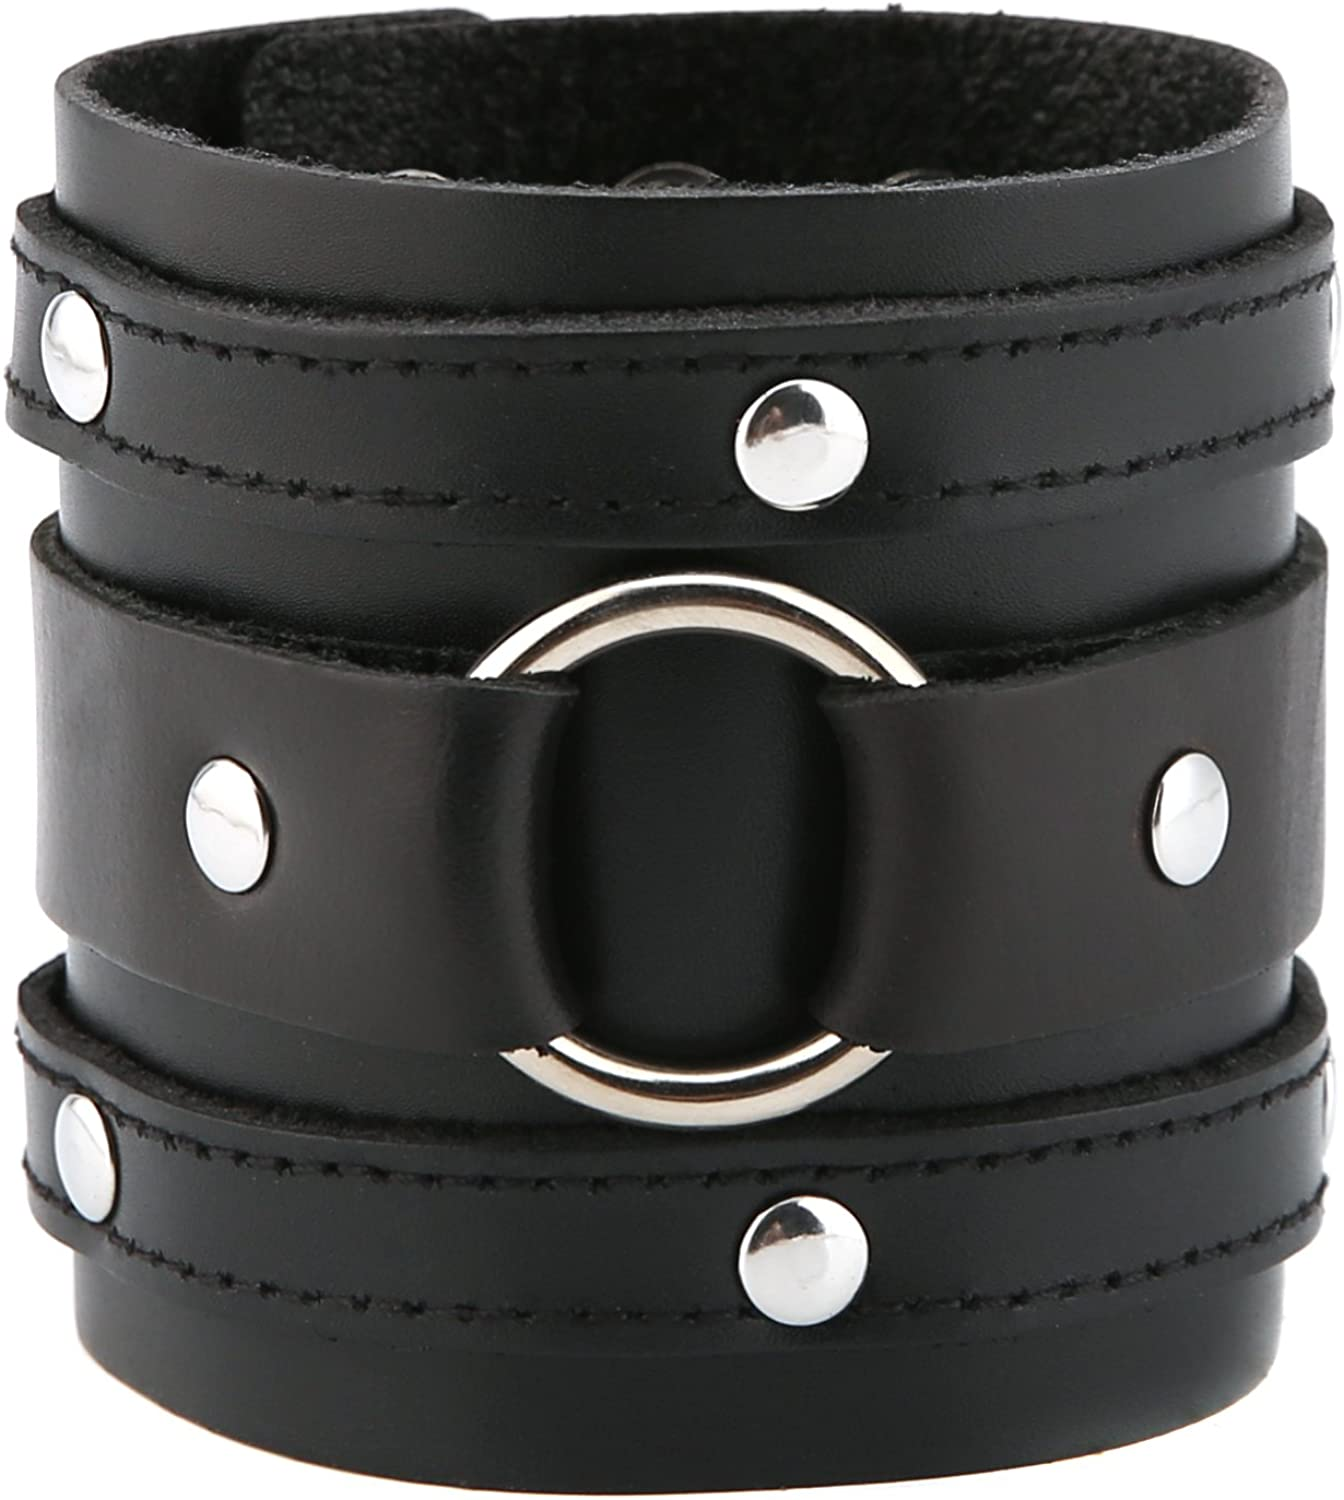 HZMAN Wide Cuff Wrap Gothic Wristband Punk Rock Biker Wide Strap Leather Bracelet